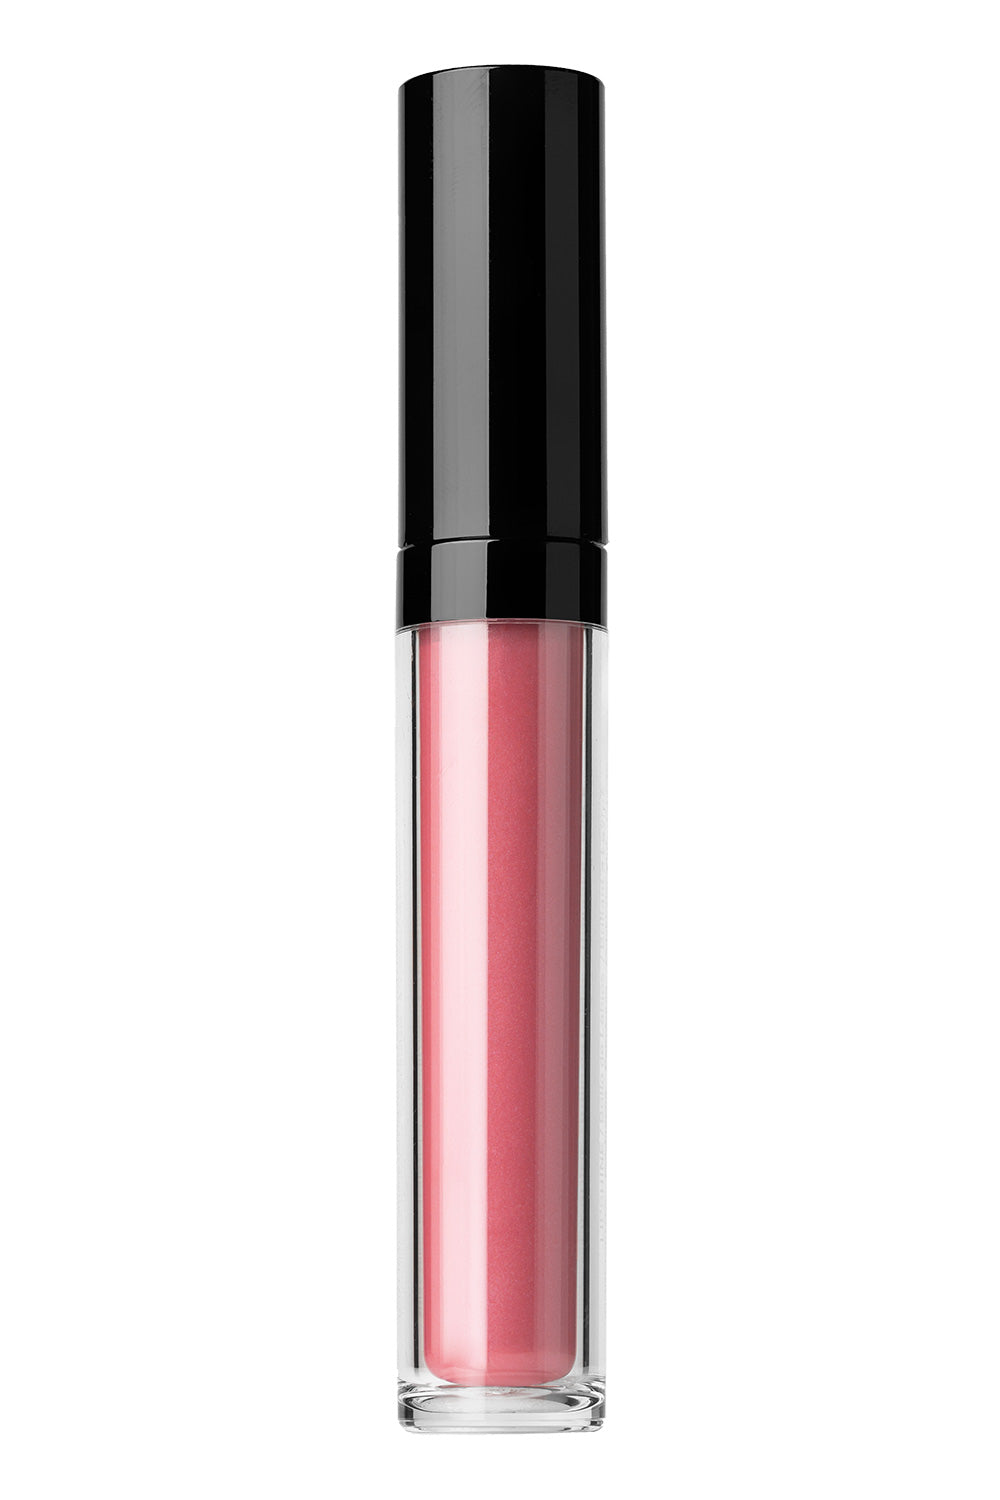 Posh - Type 2 Plumping Lip Gloss